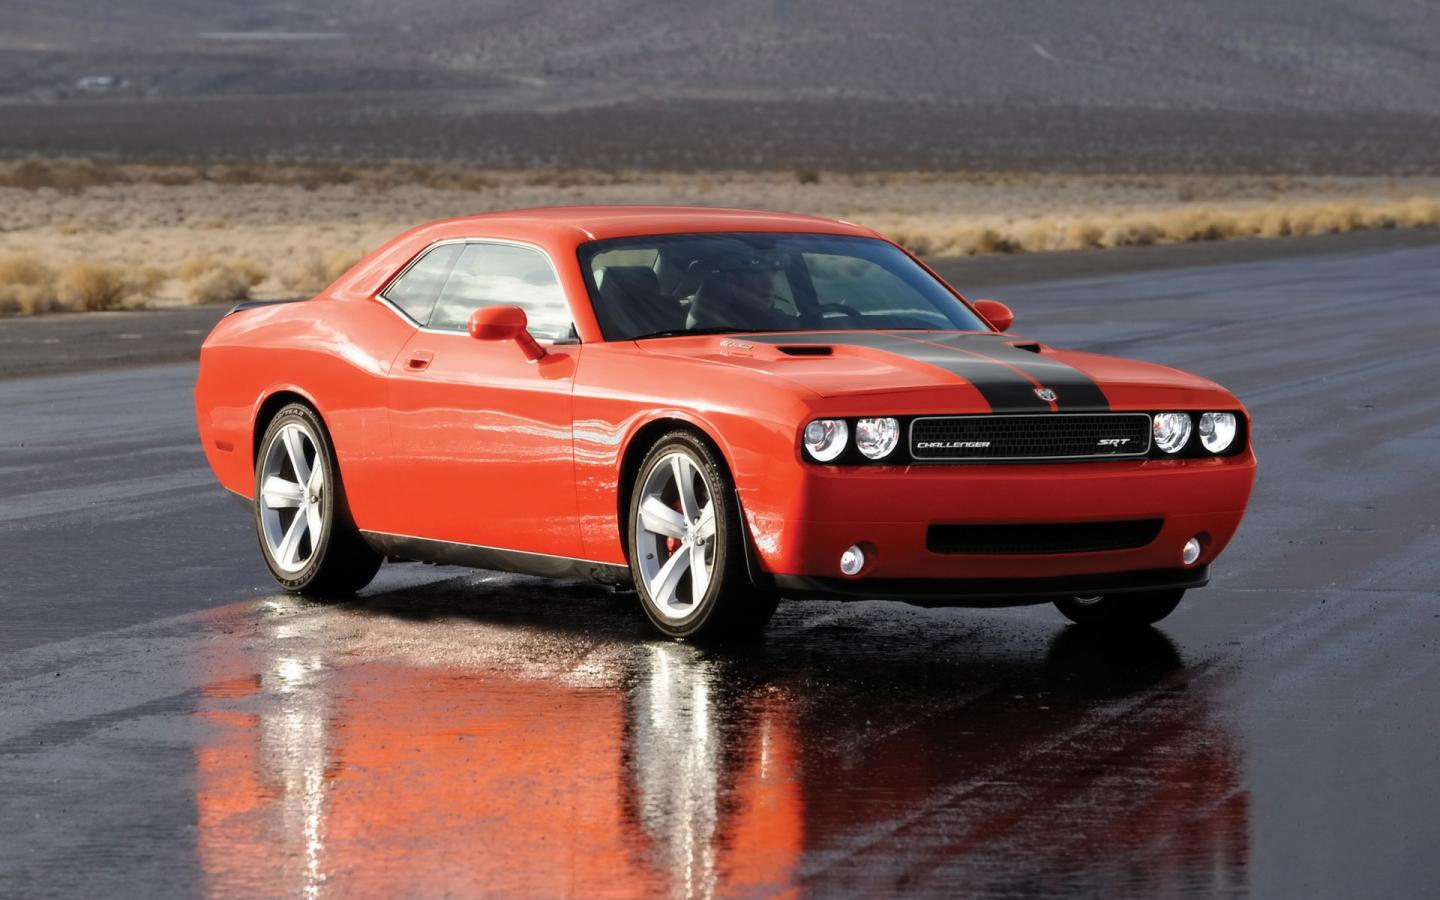 2008 Dodge Challenger Srt8 Side Angle Wet Pavement 1440x900